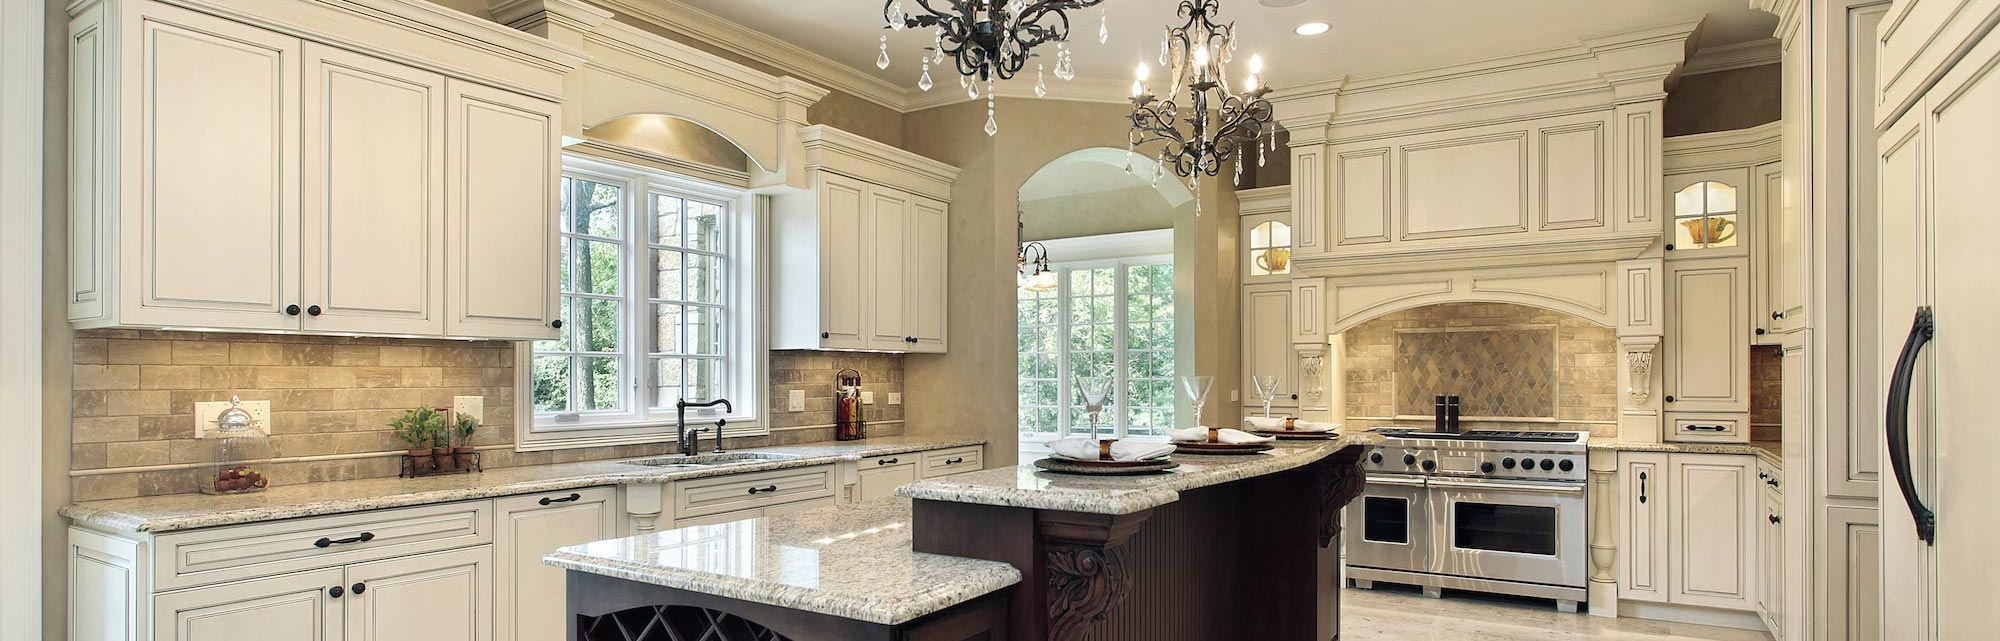 Transform Your Kitchen Cabinets Brightwaters Cabinets, Long Island Ny | Kitchen Cabinets